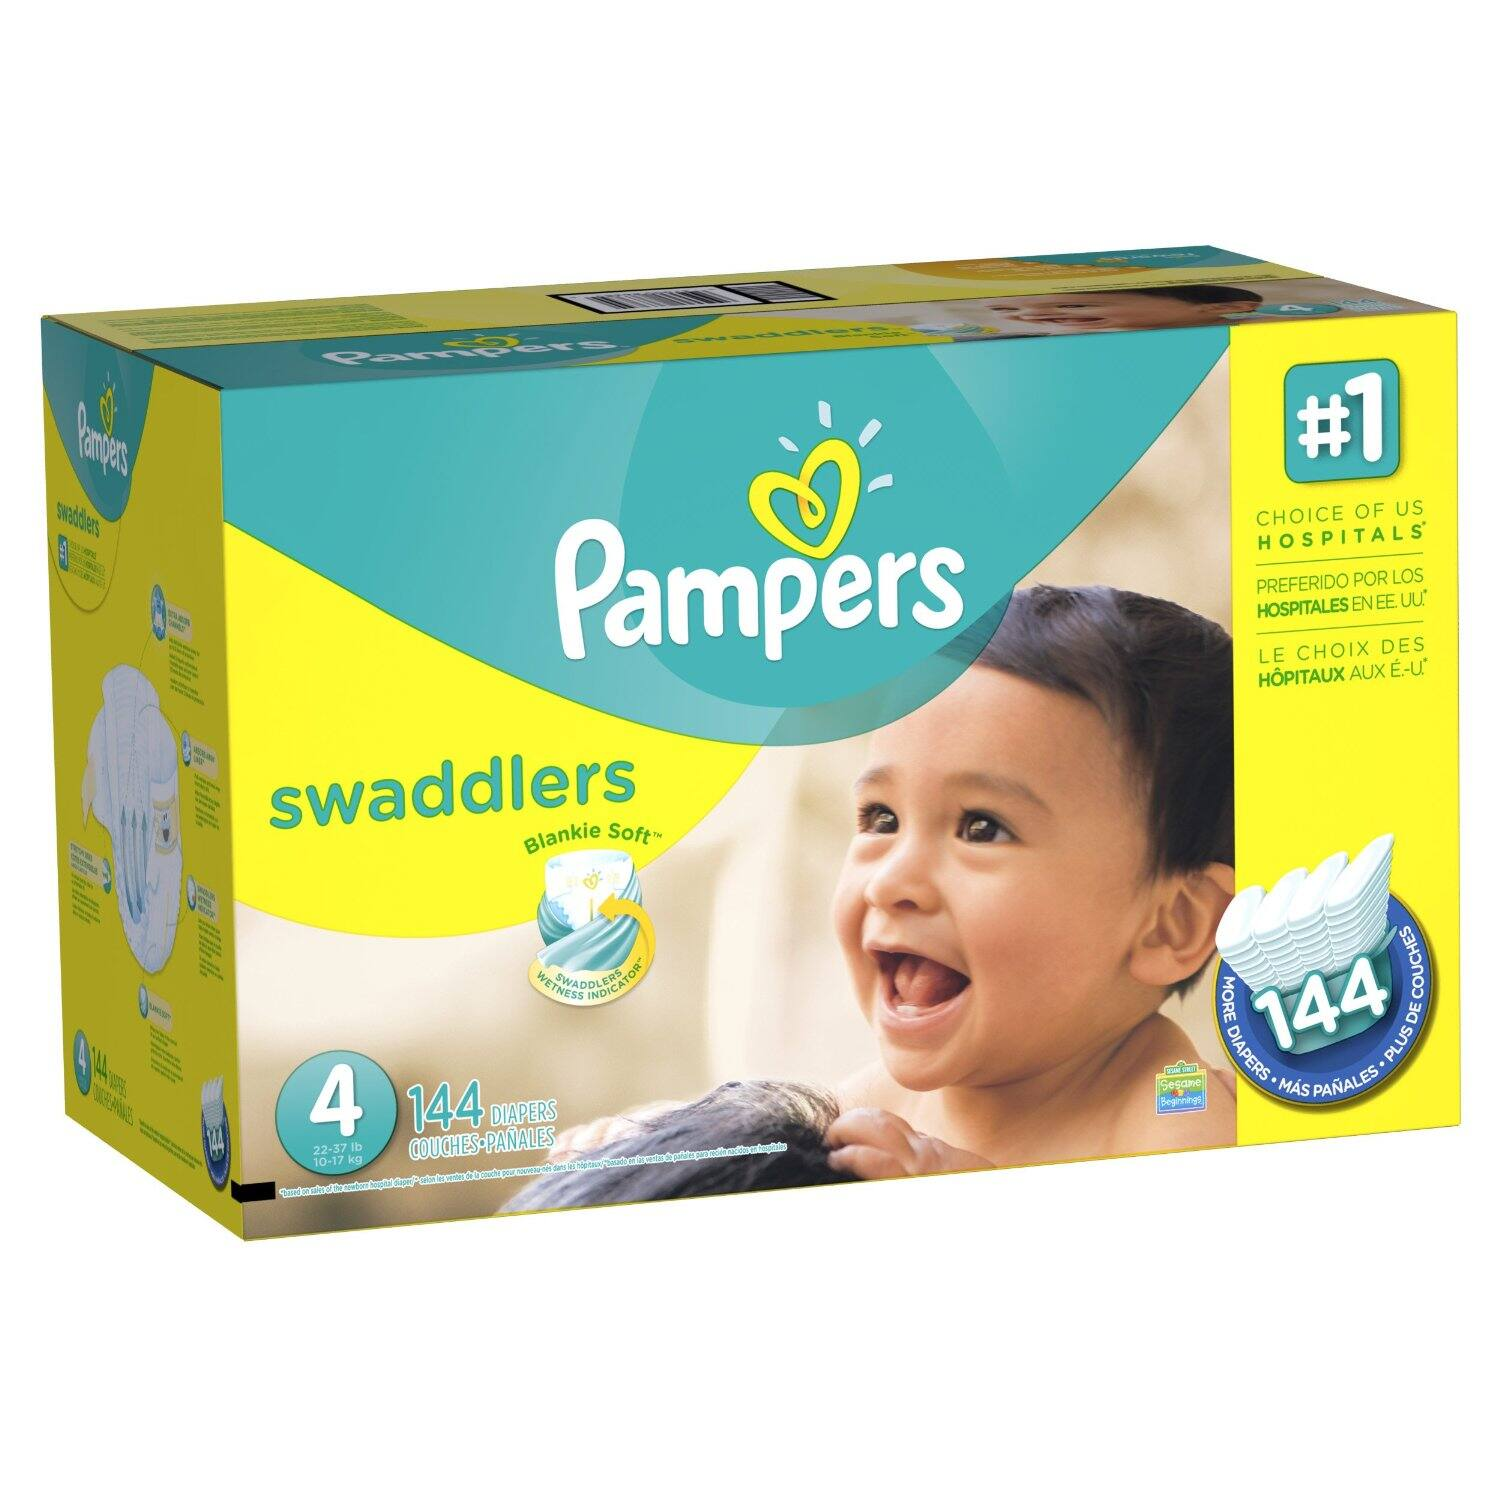 Amazon Family Members: Pampers Swaddlers, Cruisers & More: 30% Off  + 20% Off + Free Shipping